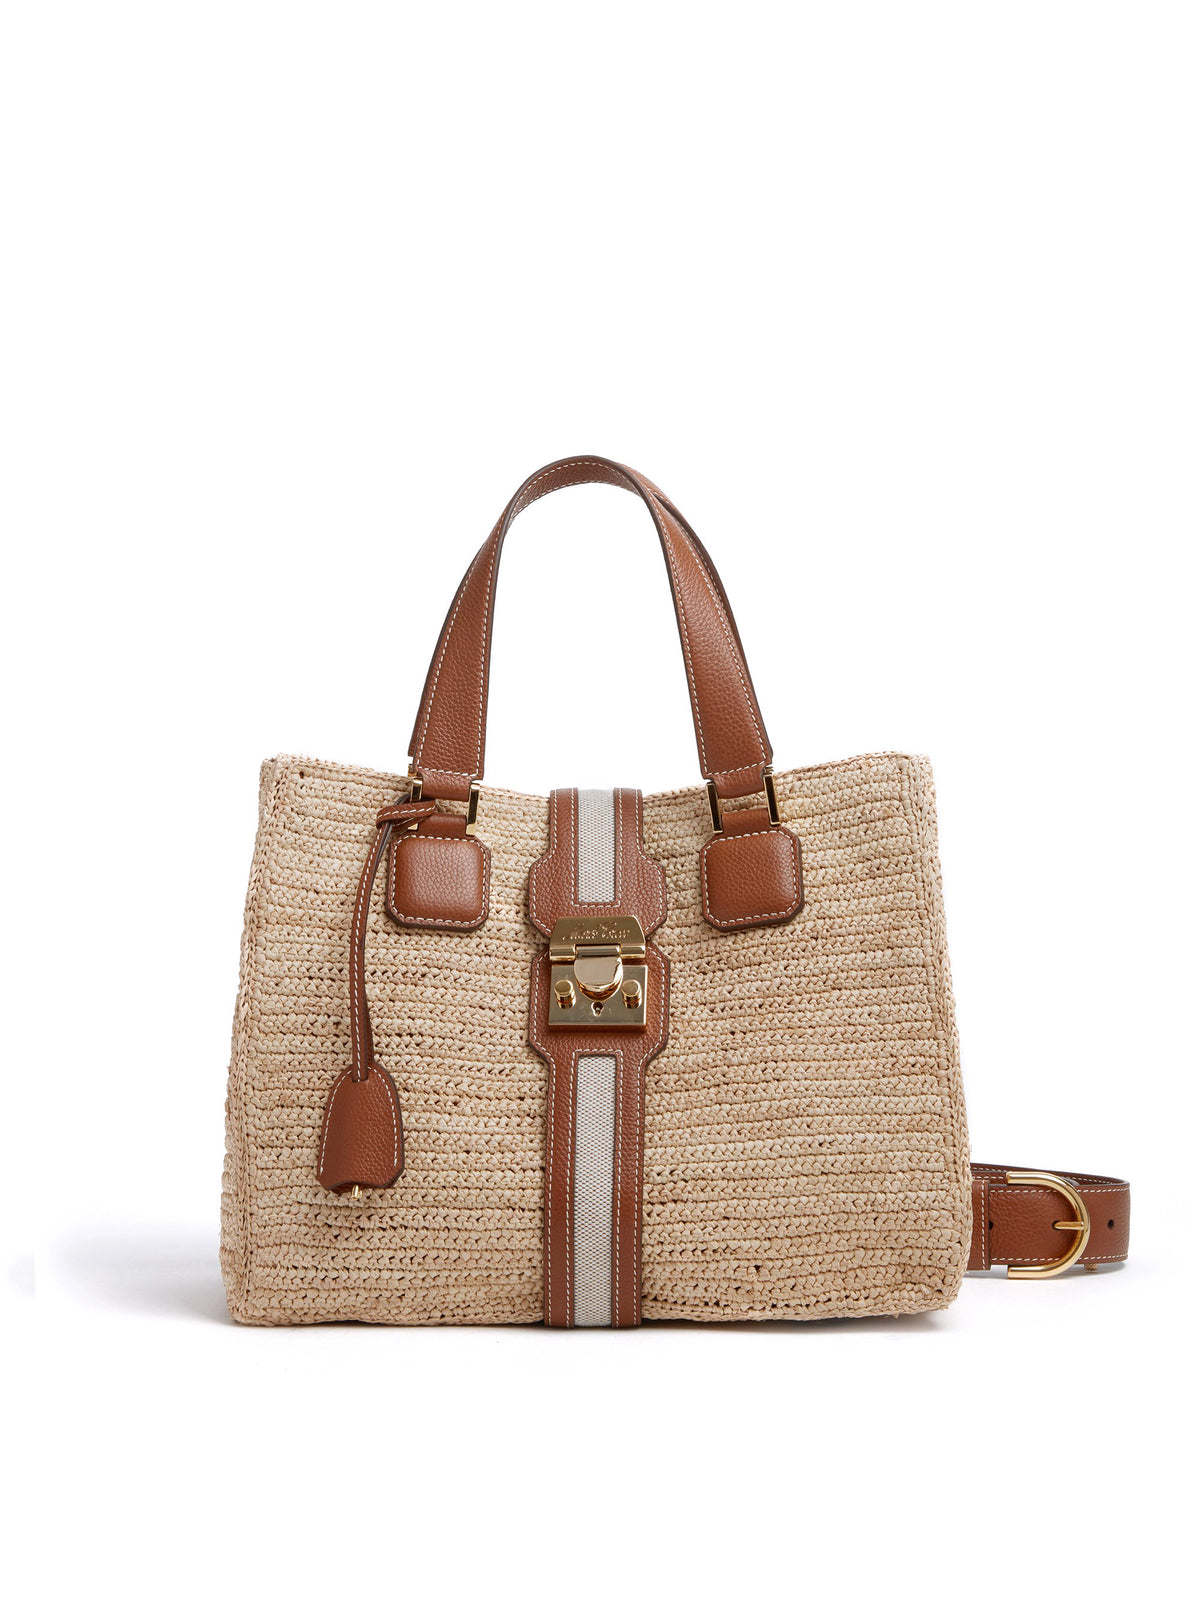 Mark Cross Riviera Raffia & Leather Tote Bag Tumbled Grain Acorn / Birdseye / Natural Raffia Front